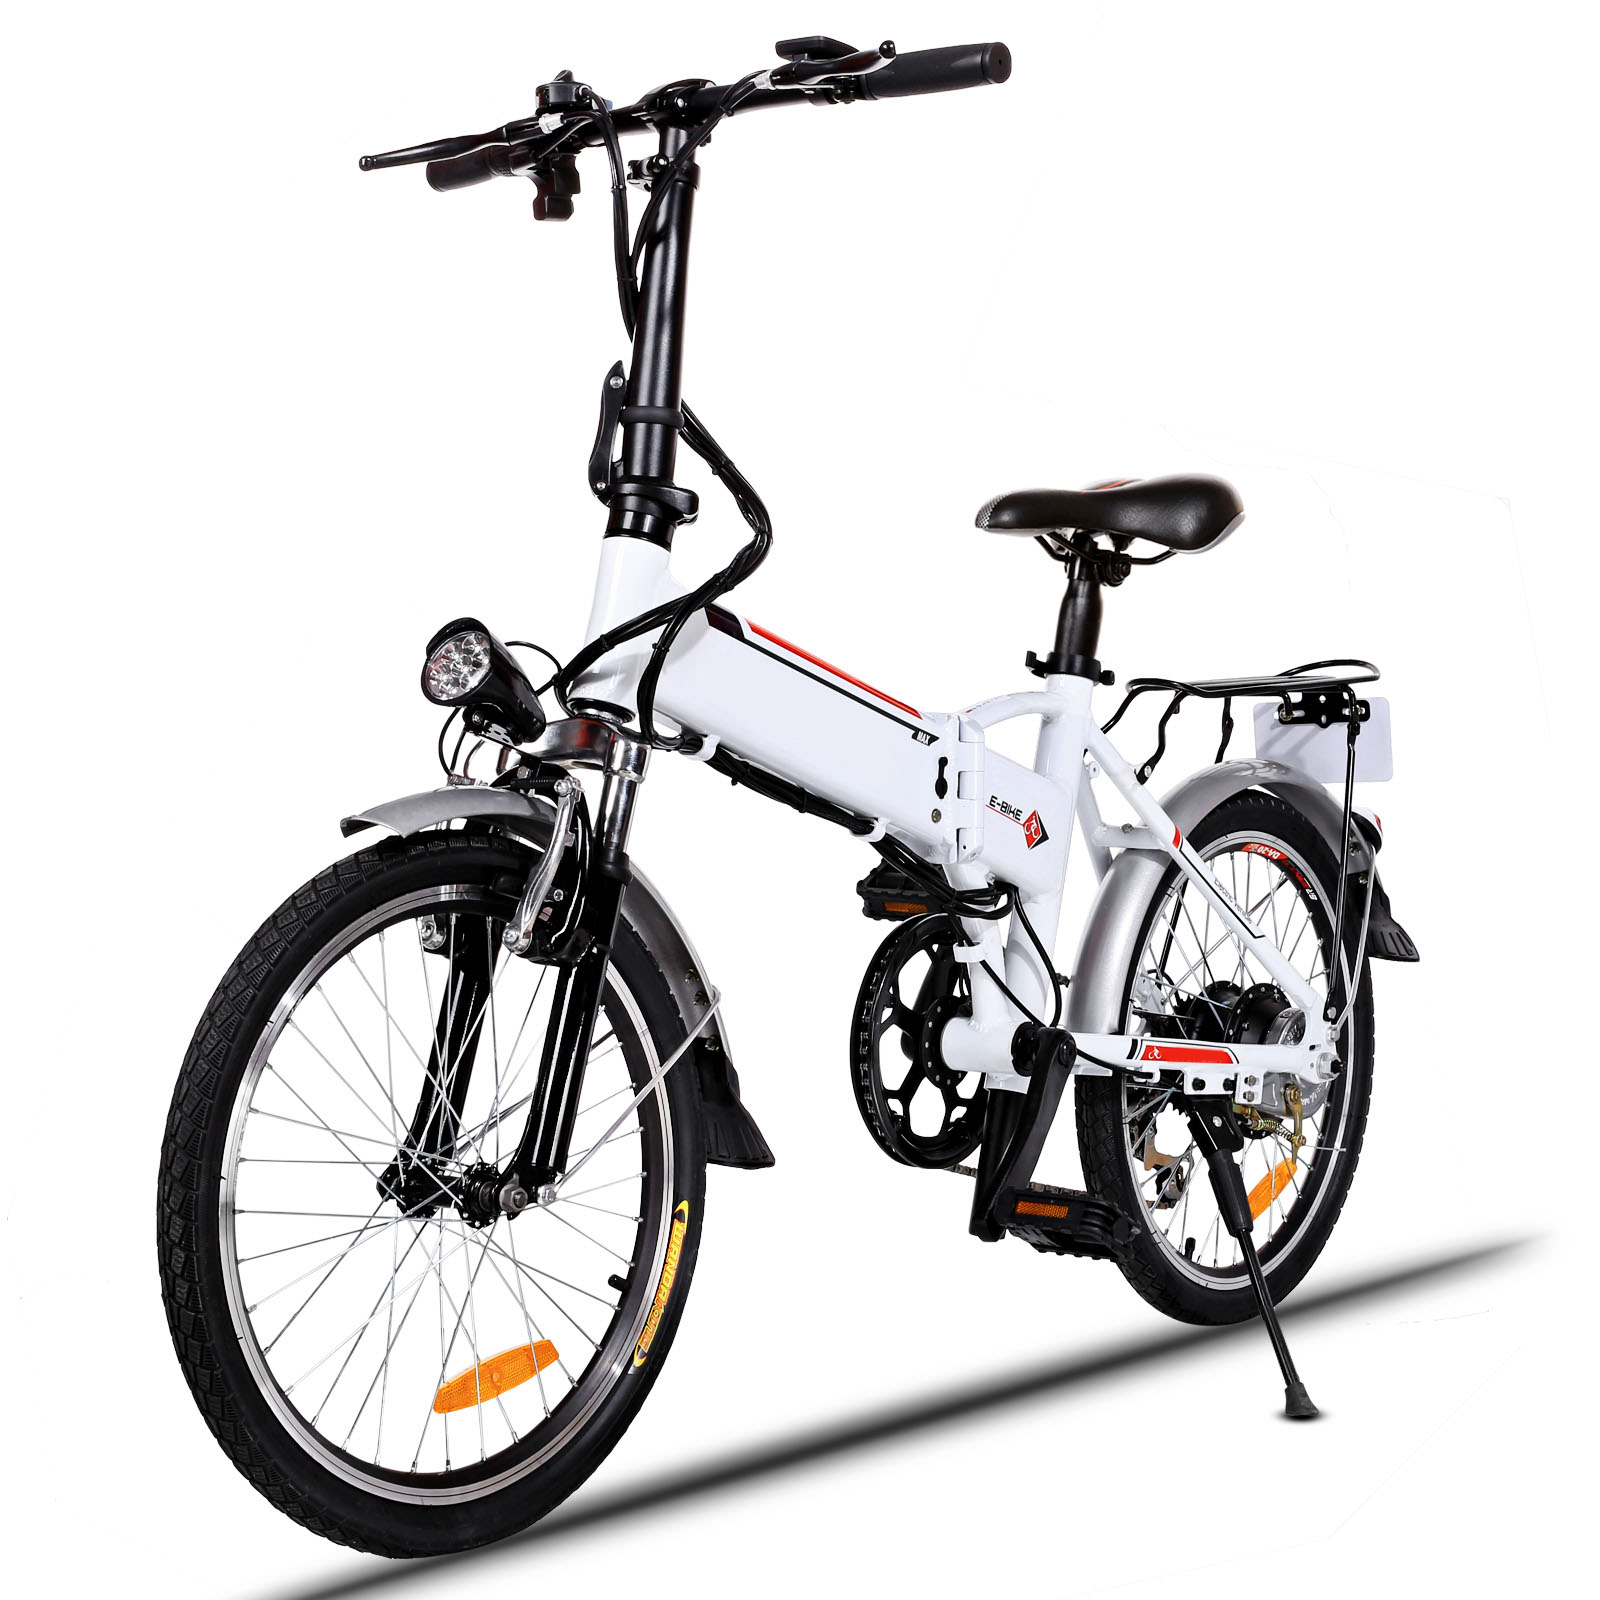 "Clearance! Hifashion 18.7"" Folding Adjustable Mountain Bike Electric Bicycle with Smart Lithium Battery"